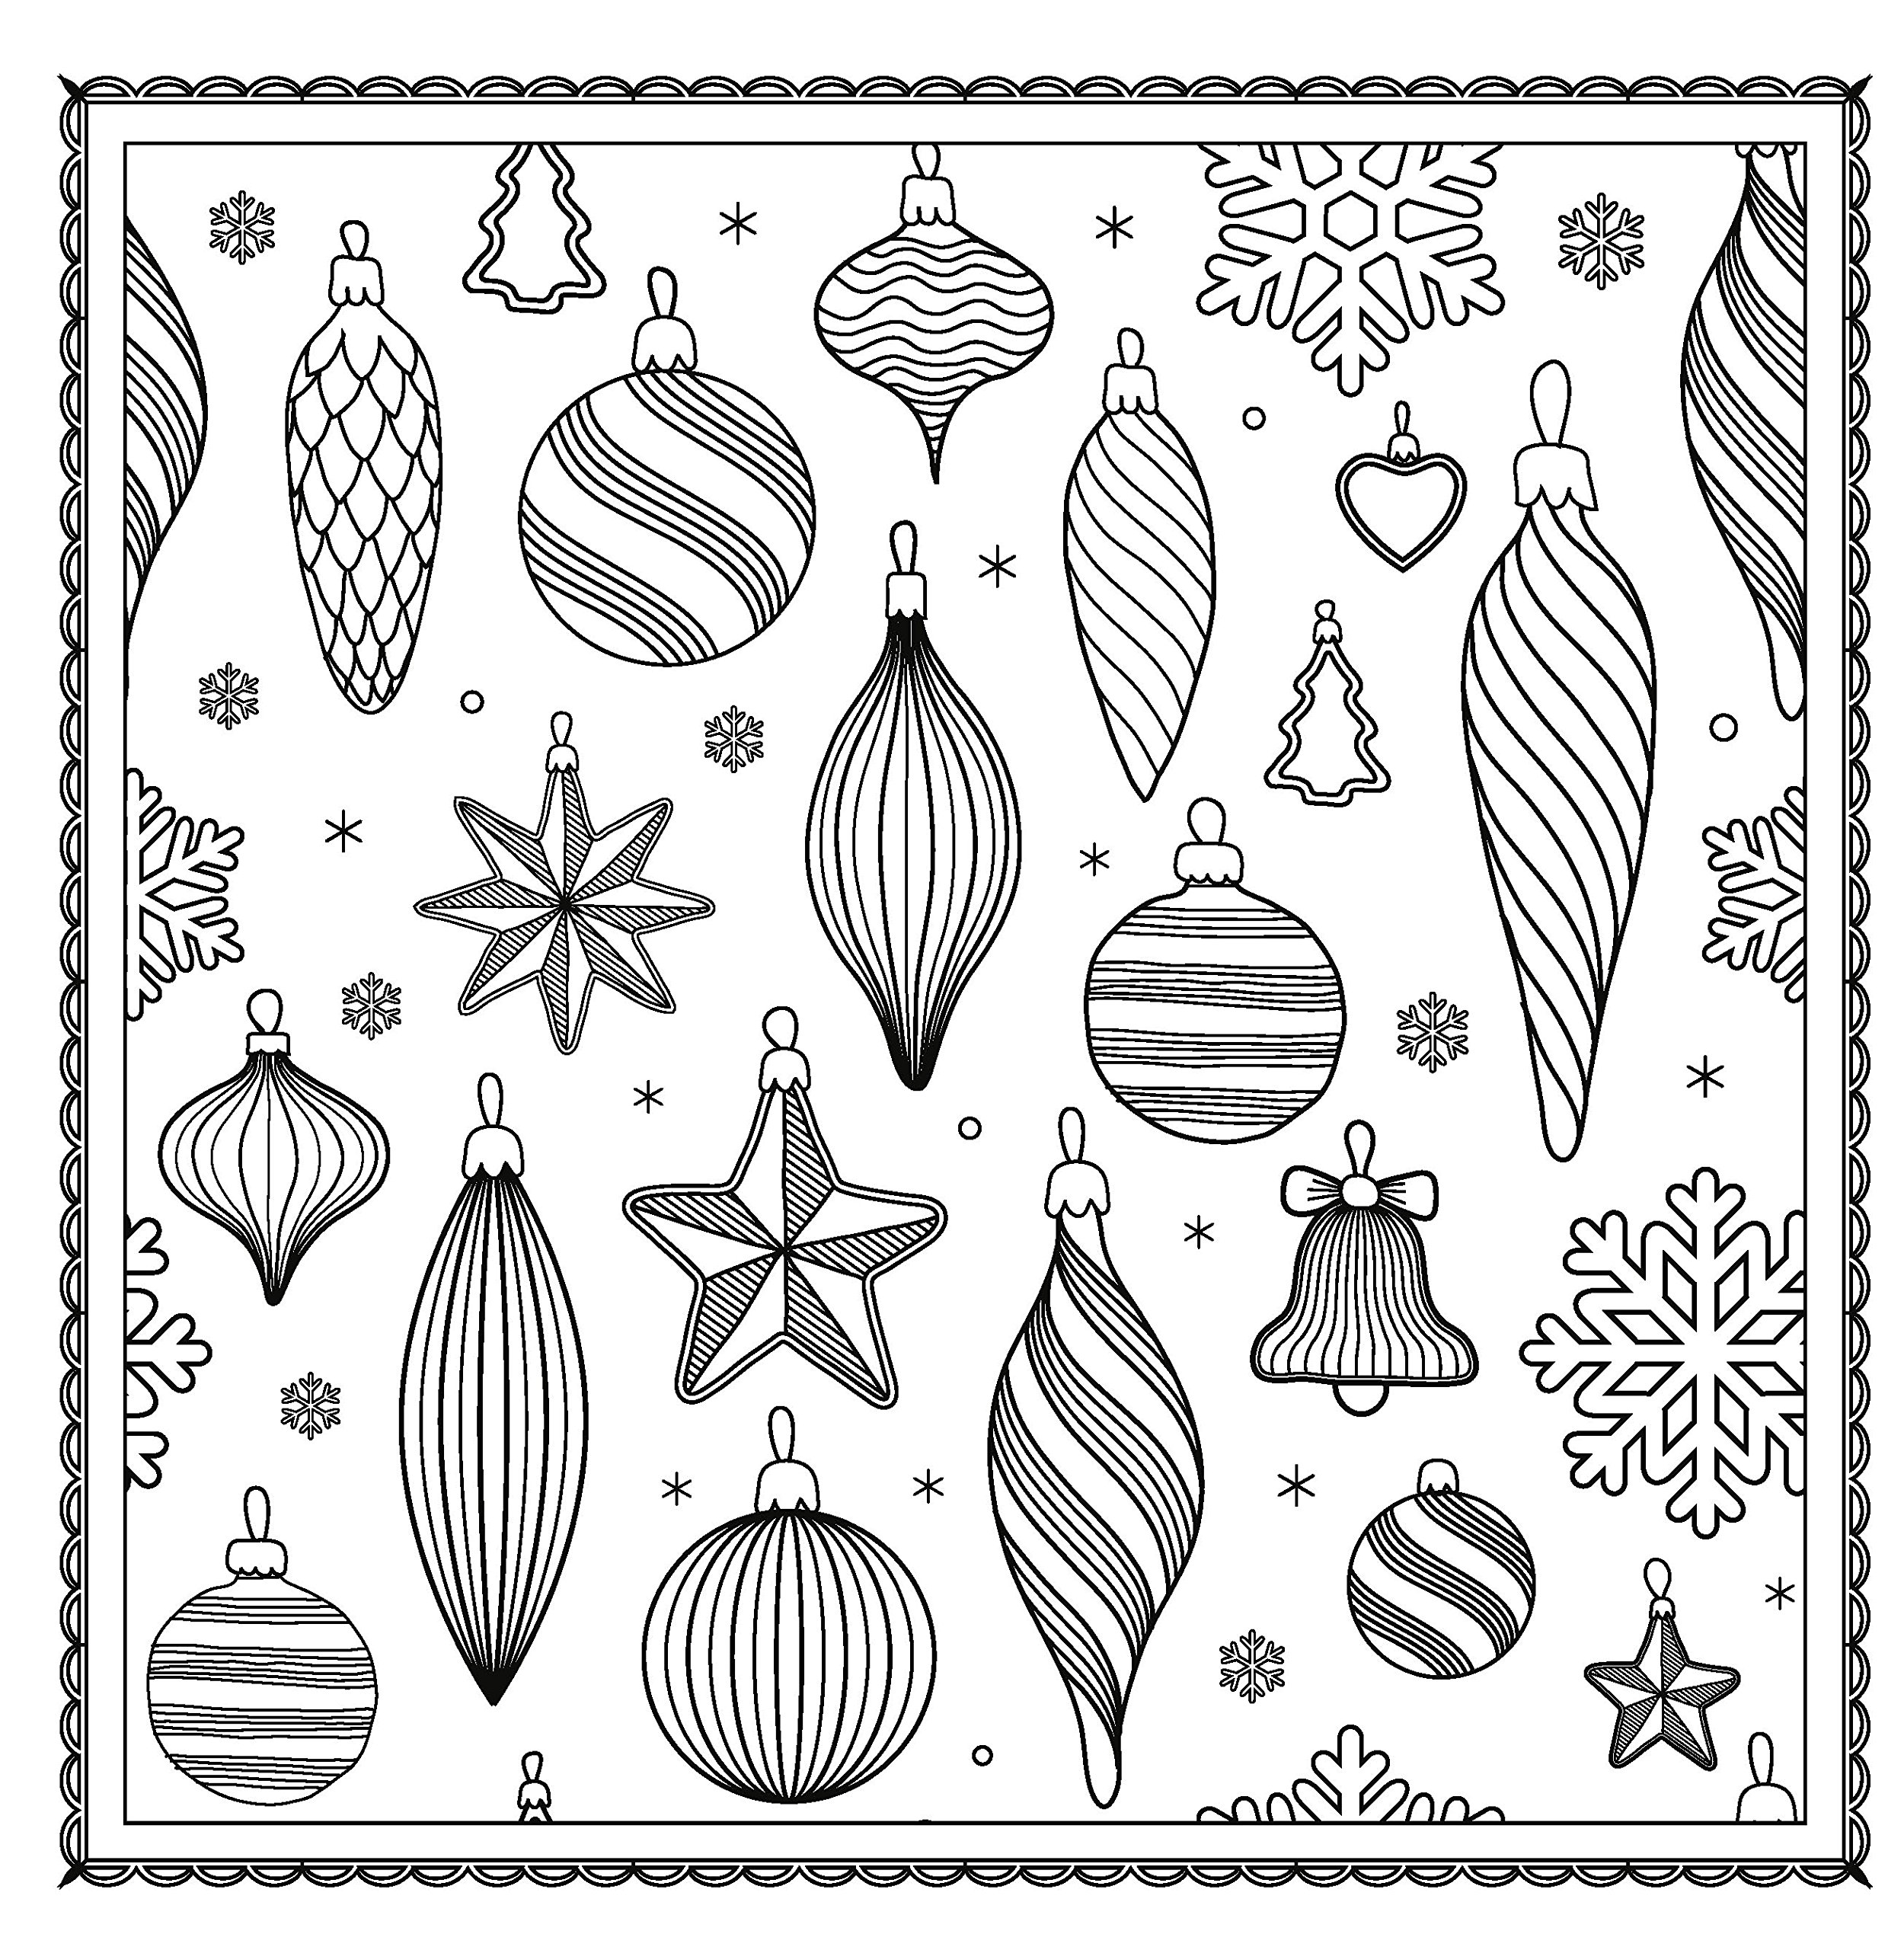 A fun magic coloring book amazon - Amazon Com Winter Magic Beautiful Holiday Patterns Coloring Book For Adults Color Magic 9781438007335 Arsedition Books